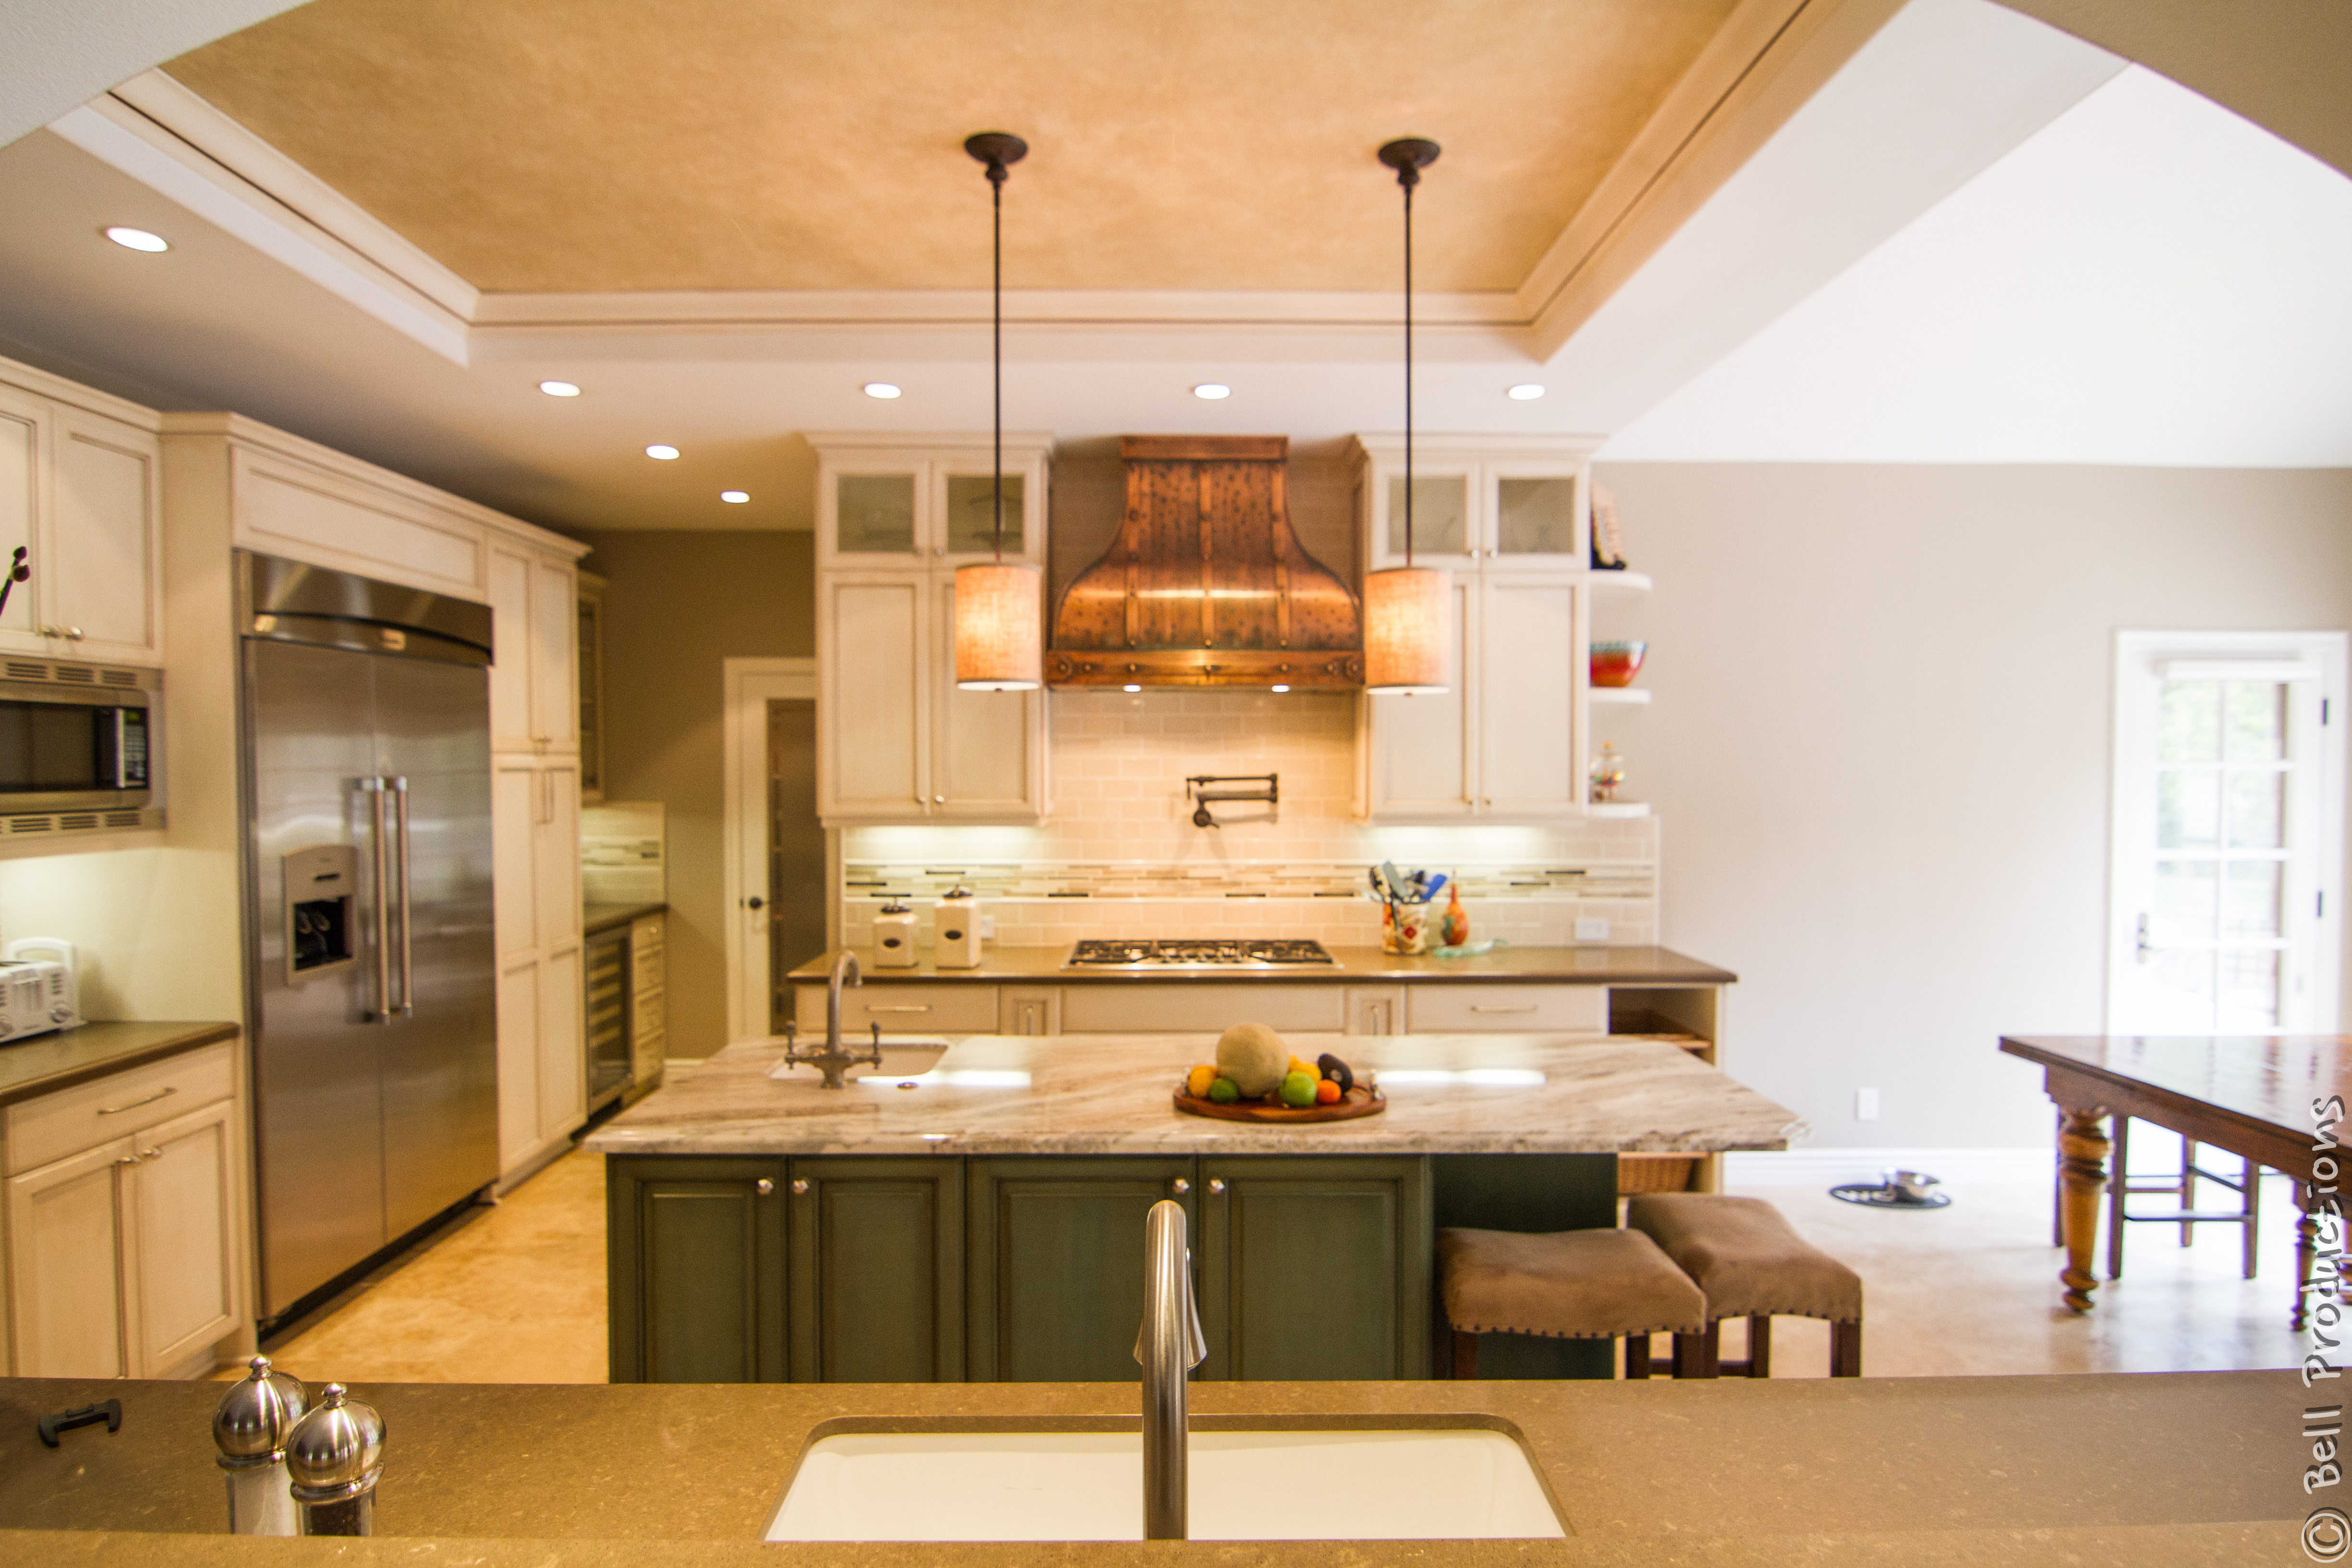 kitchen remodeling tips from the pros - friendly contractor